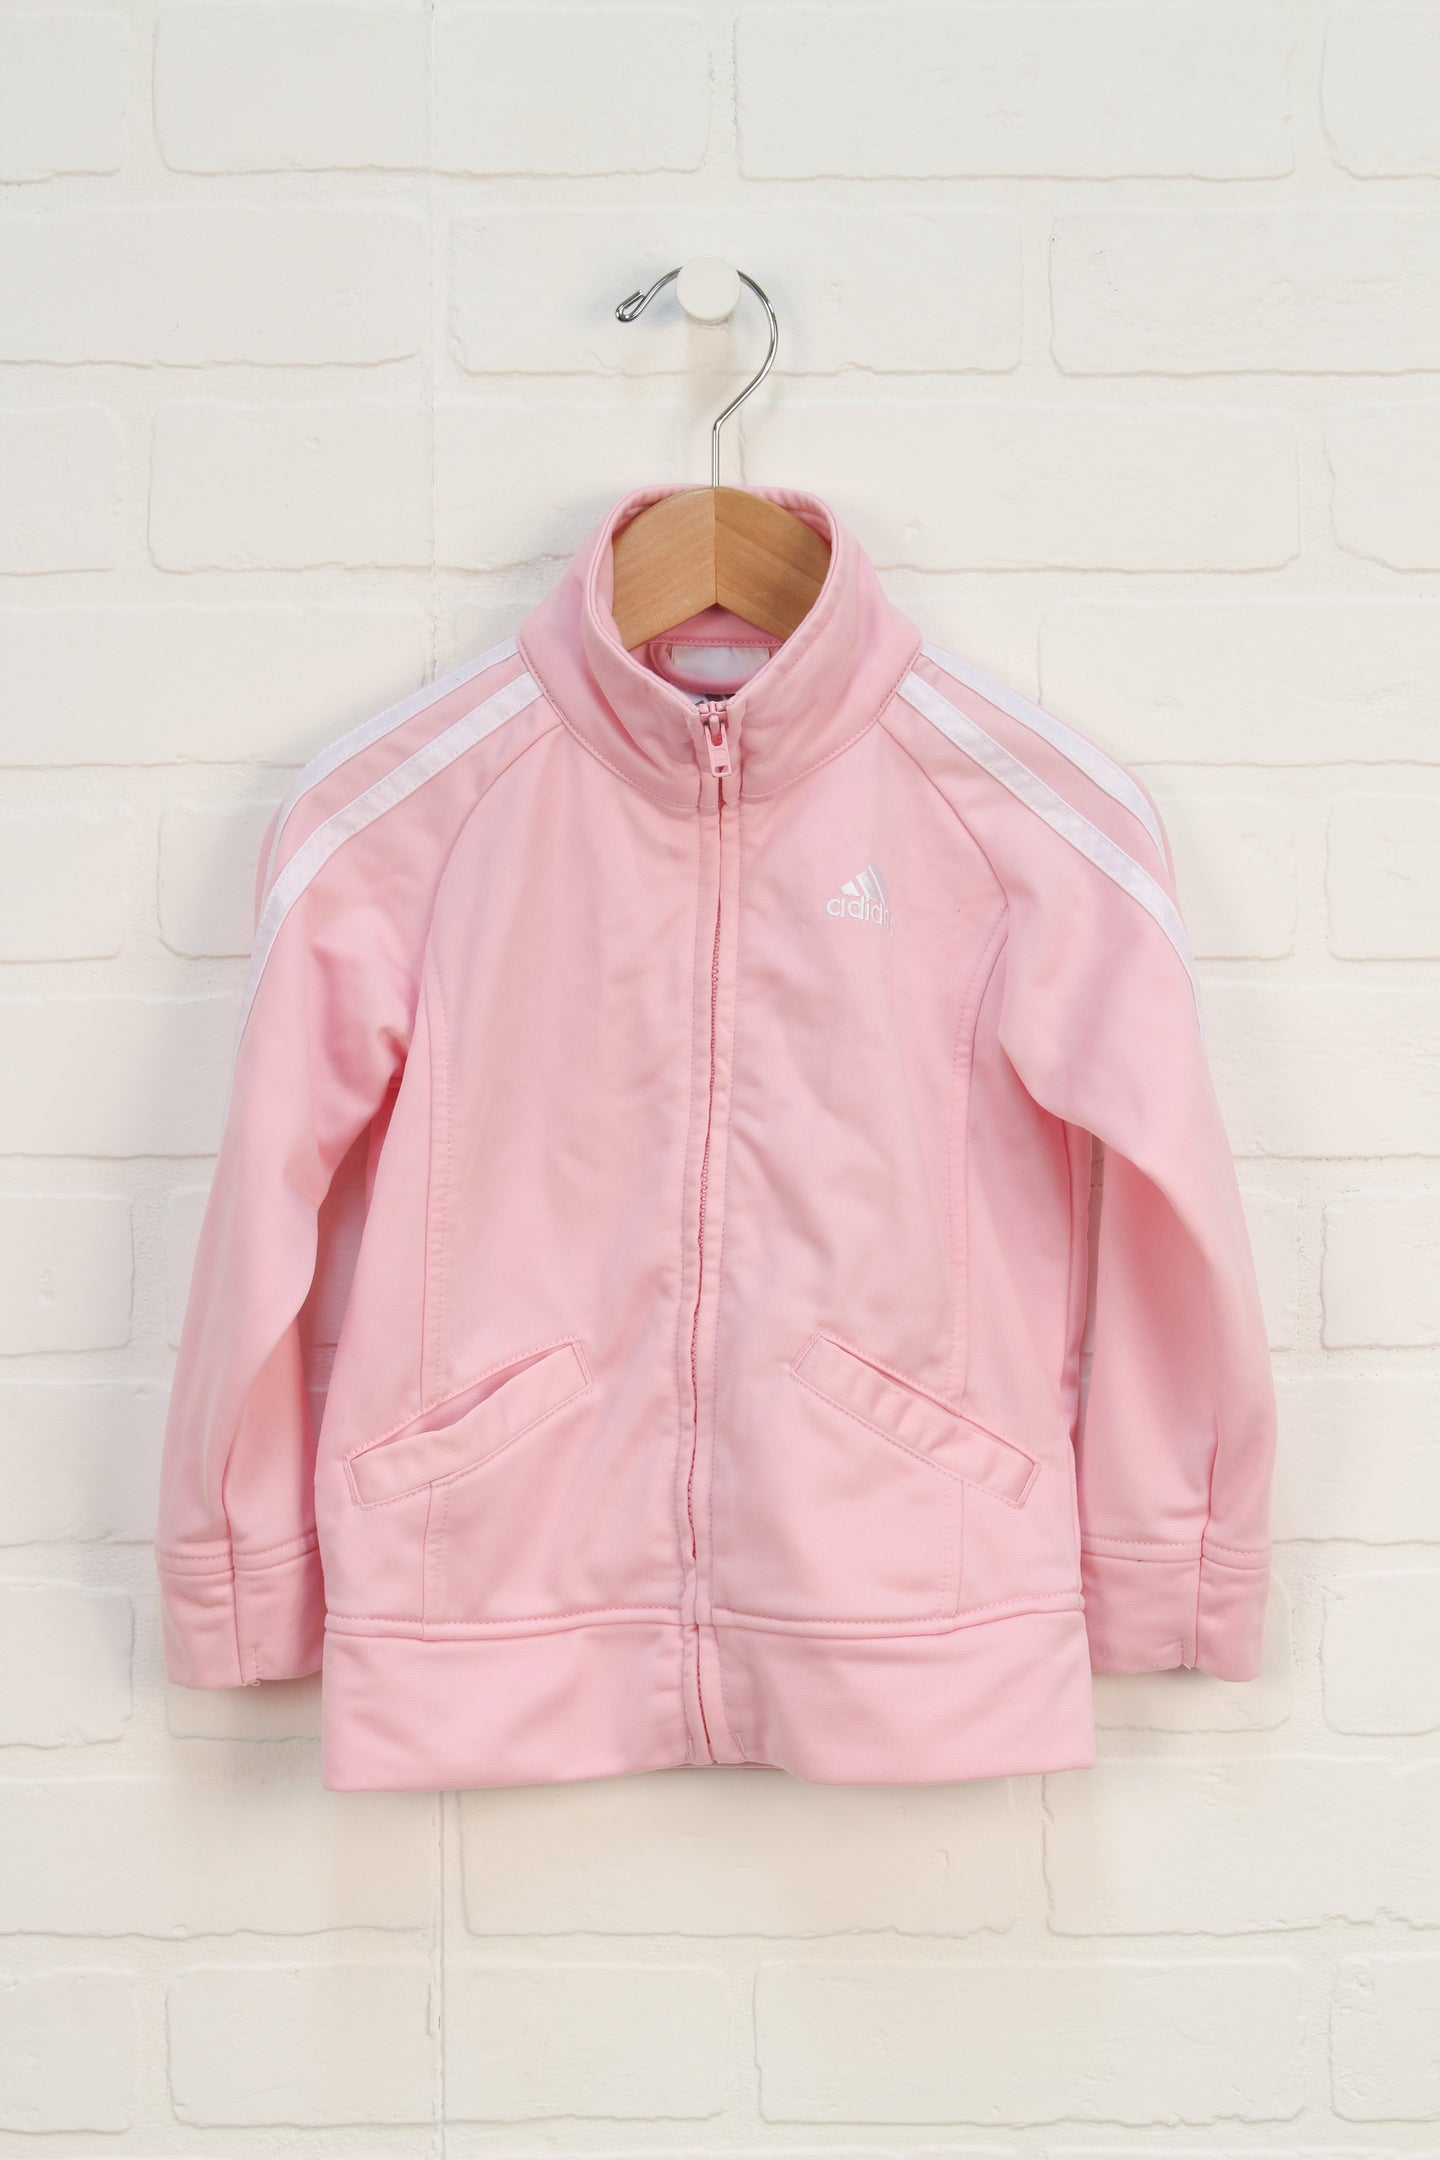 PInk + White Athletic Jacket (Size 2T)